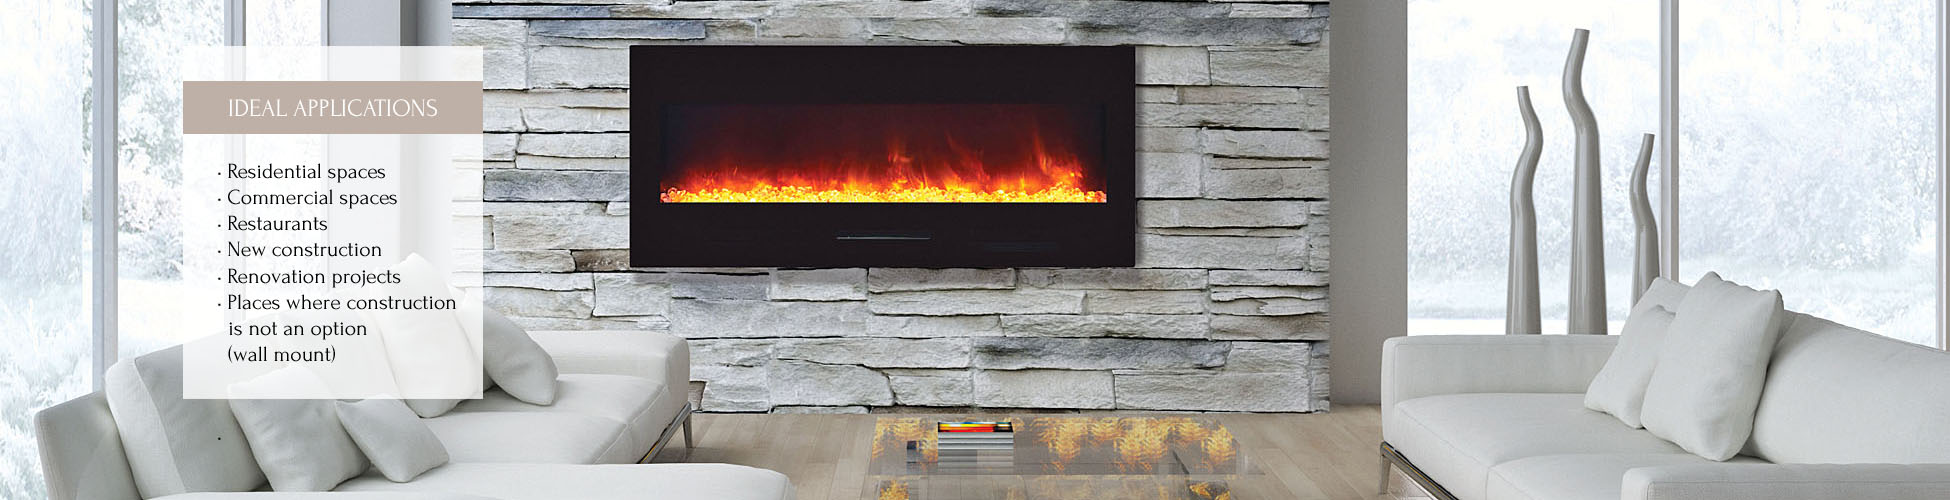 Electric Fireplaces Wall Mount Flush Mount Wm Fm Series Wm-fm-50-bg Electric Fireplace - Amantii Electric Fireplaces